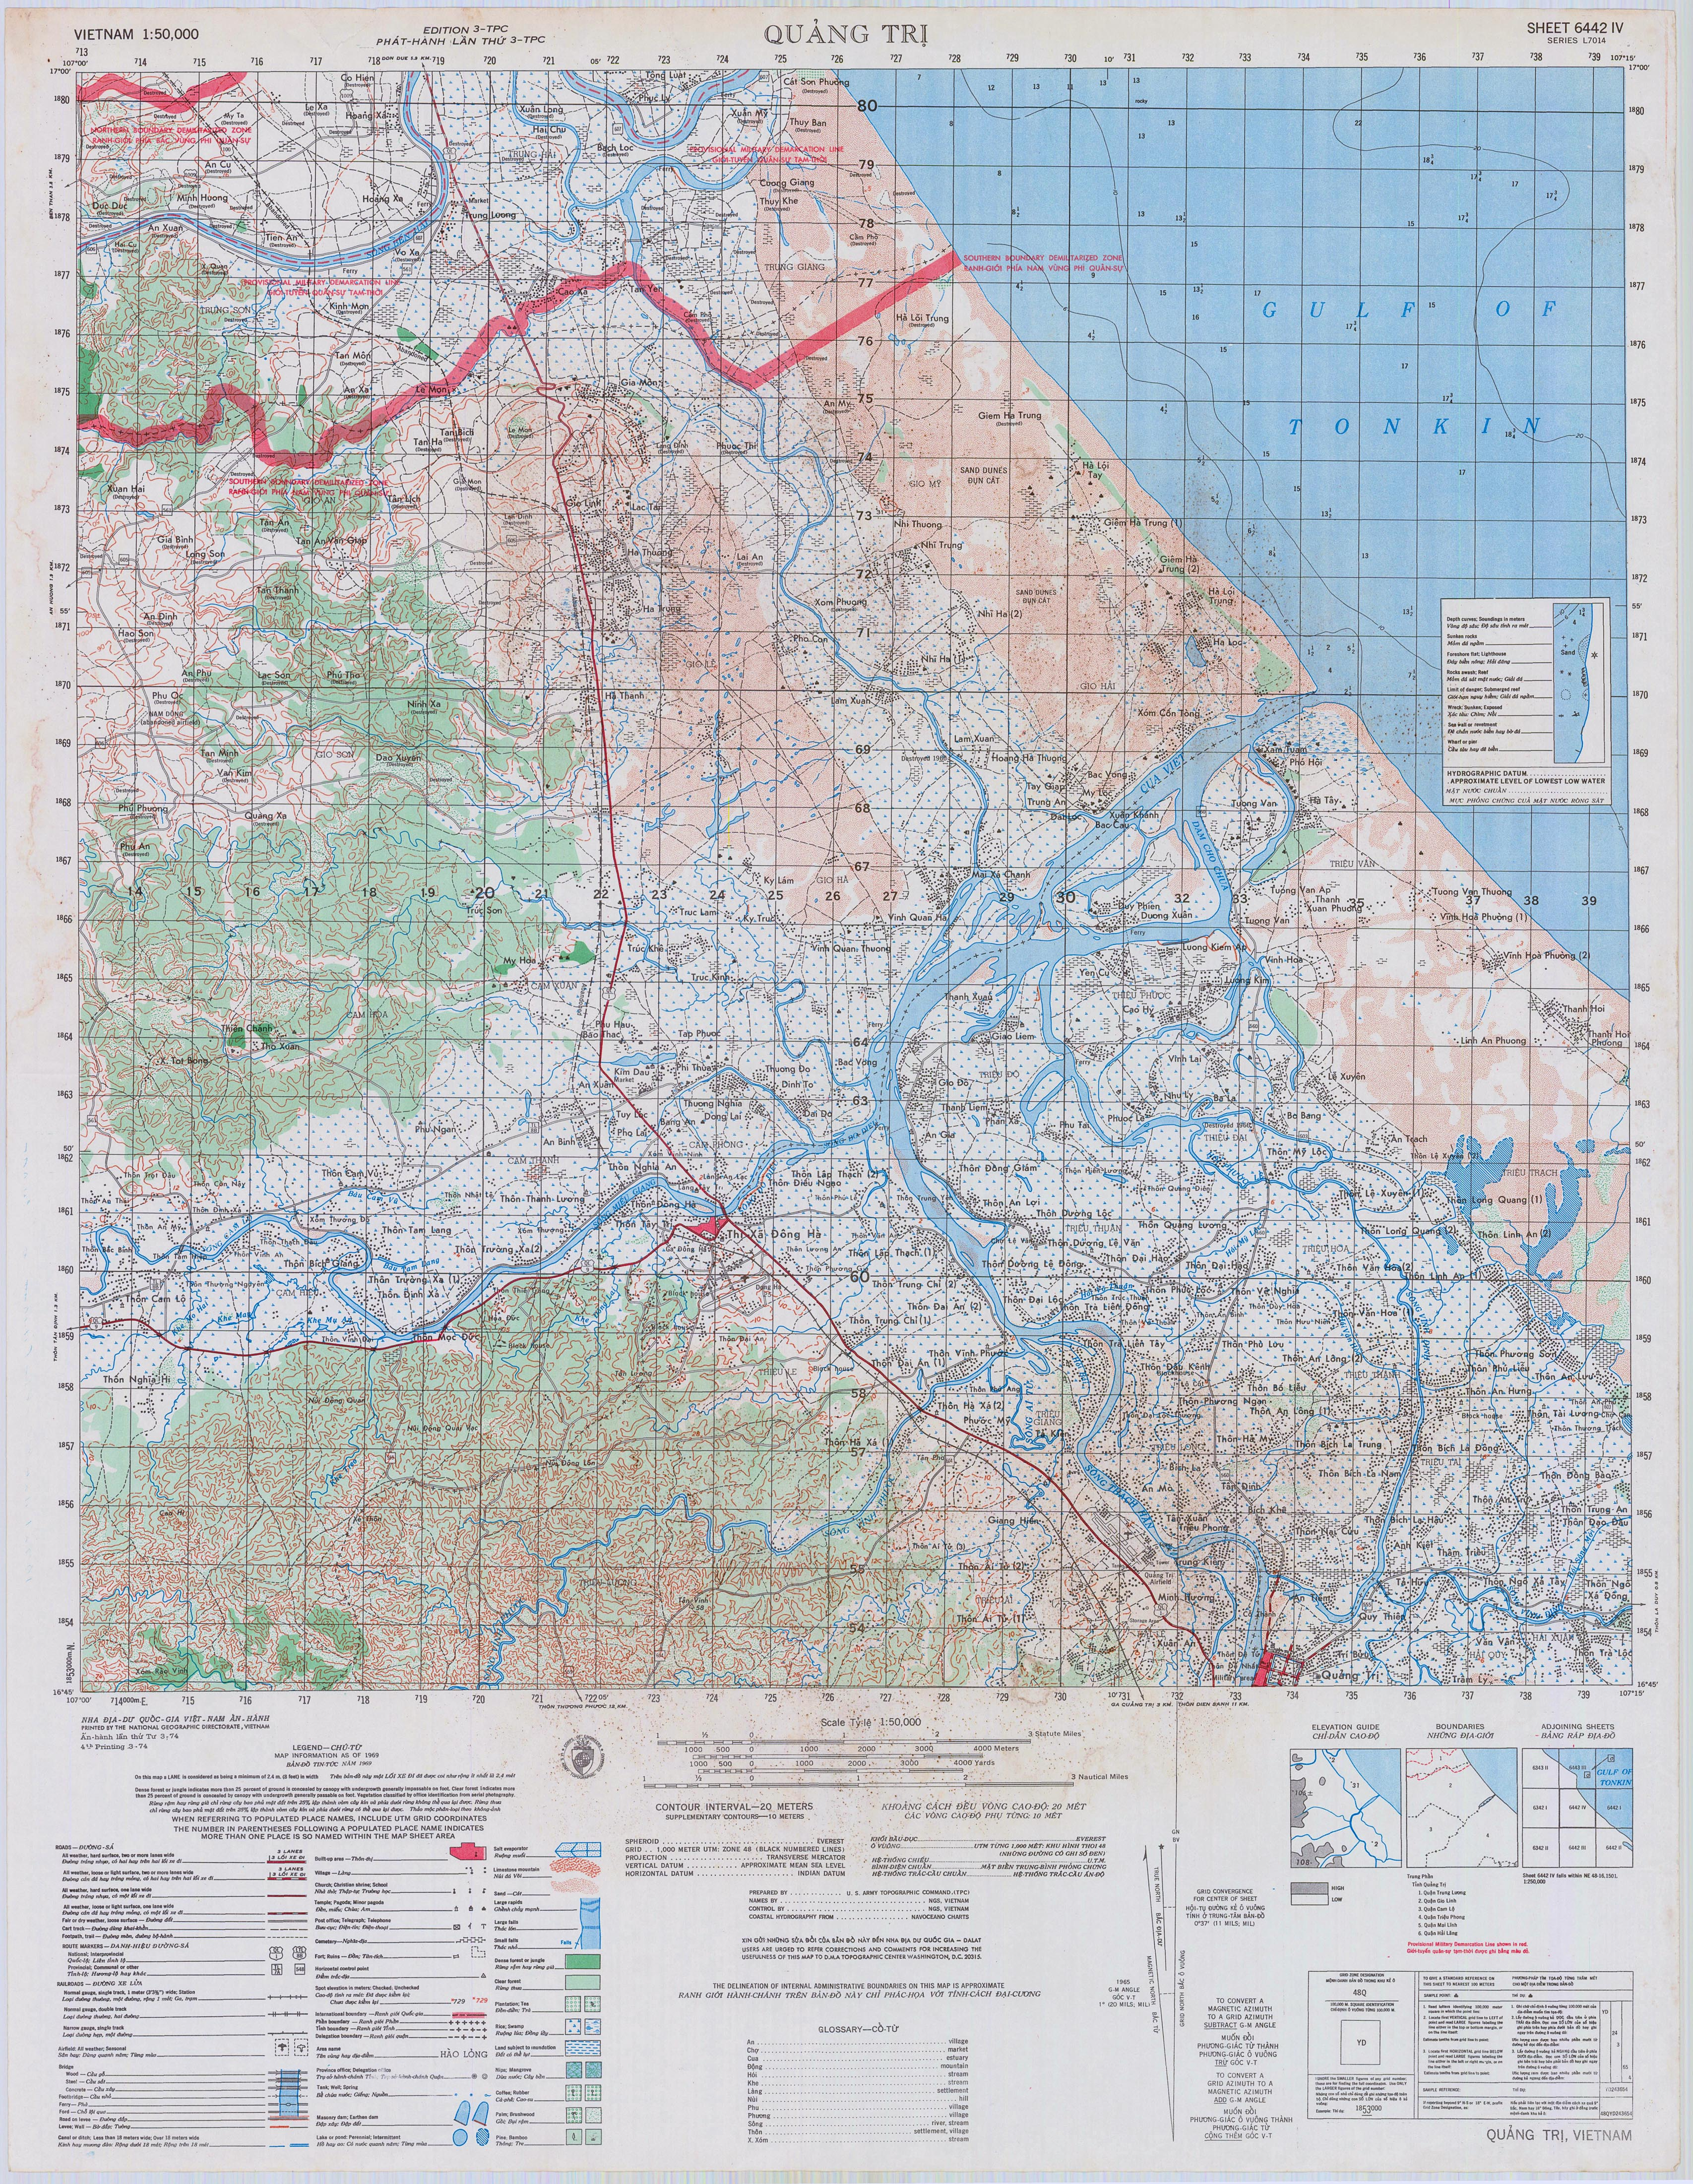 Charlie 1 506 tactical maps quang tri viet nam sciox Image collections